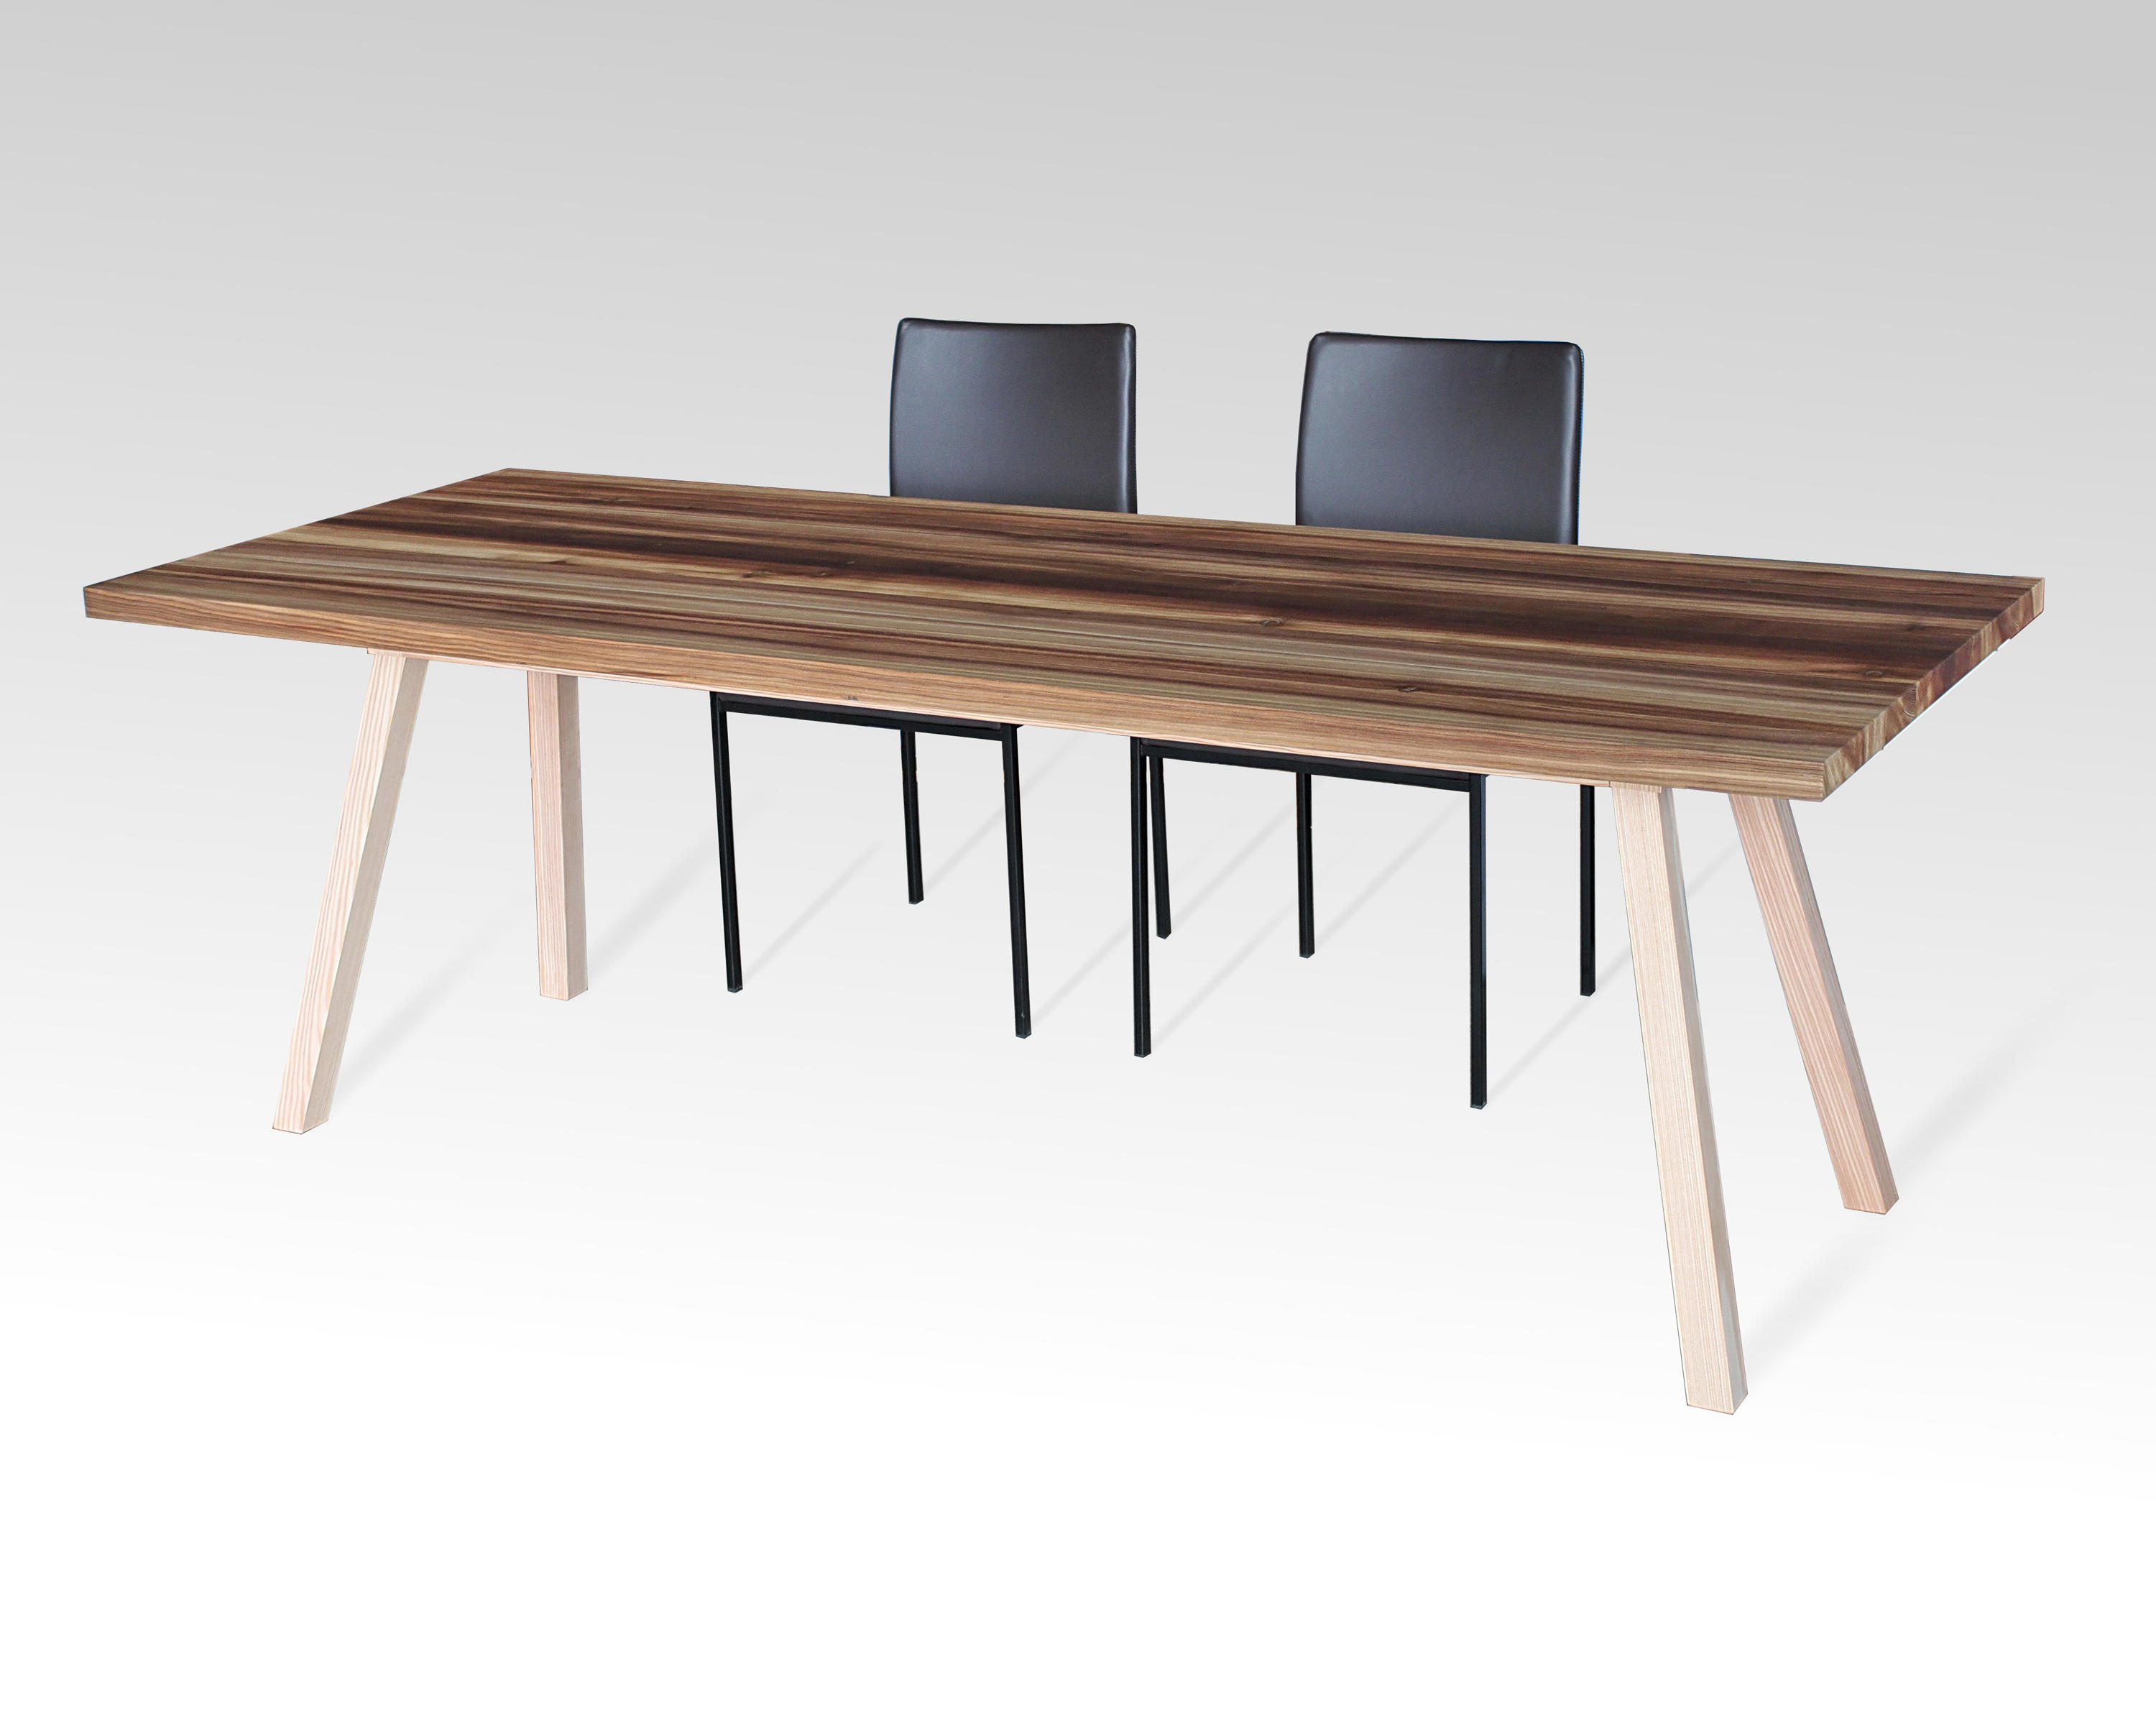 IGN. SEVEN. - Meeting room tables from Ign. Design.   Architonic